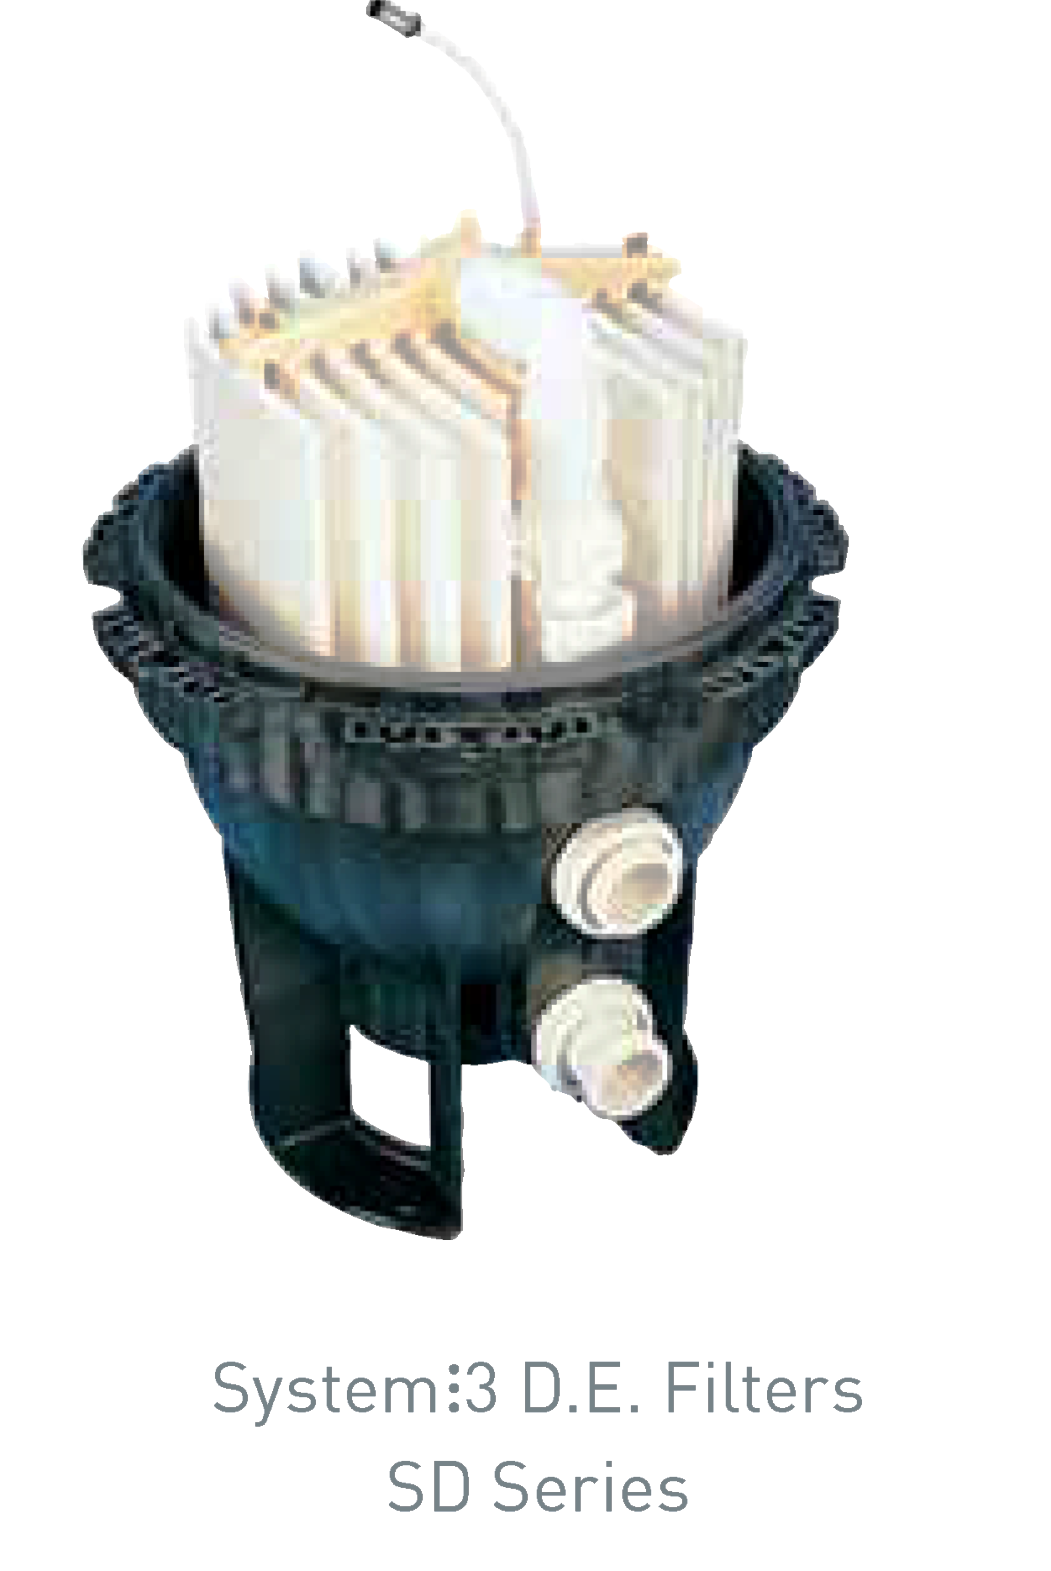 Sheet P 6 Equipment Layout Schematic Aquatic Mechanical Swimming Pool Filter System Diagram Two Of The Most Commonly Utilized Filters In Industry Are Called Cartridge And Oddly Enough This Together With